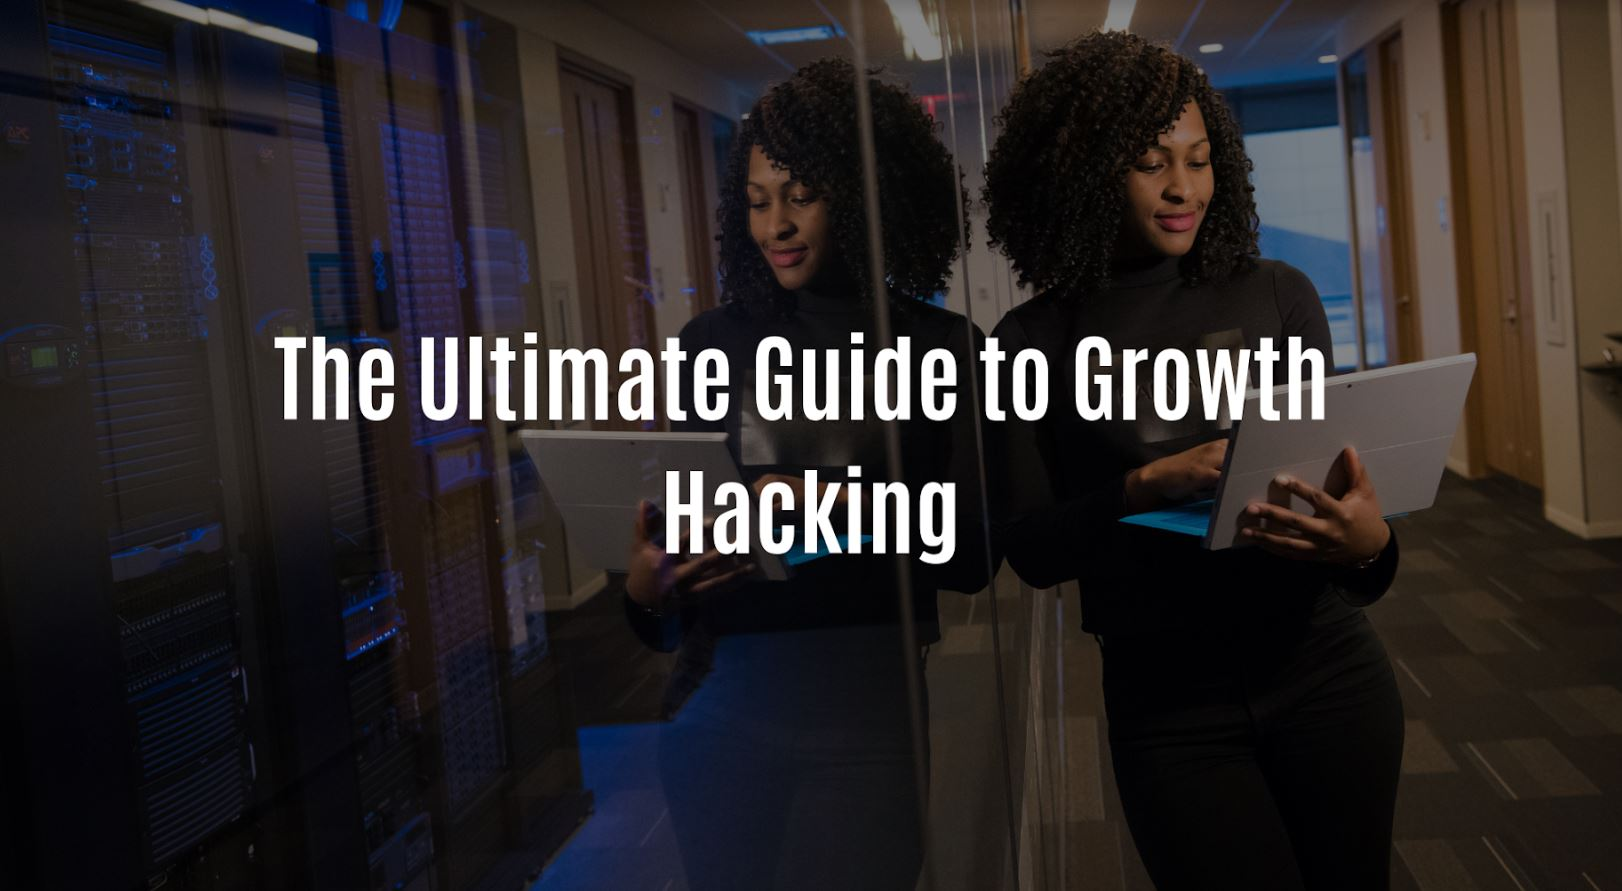 The Ultimate Guide to Growth Hacking.JPG